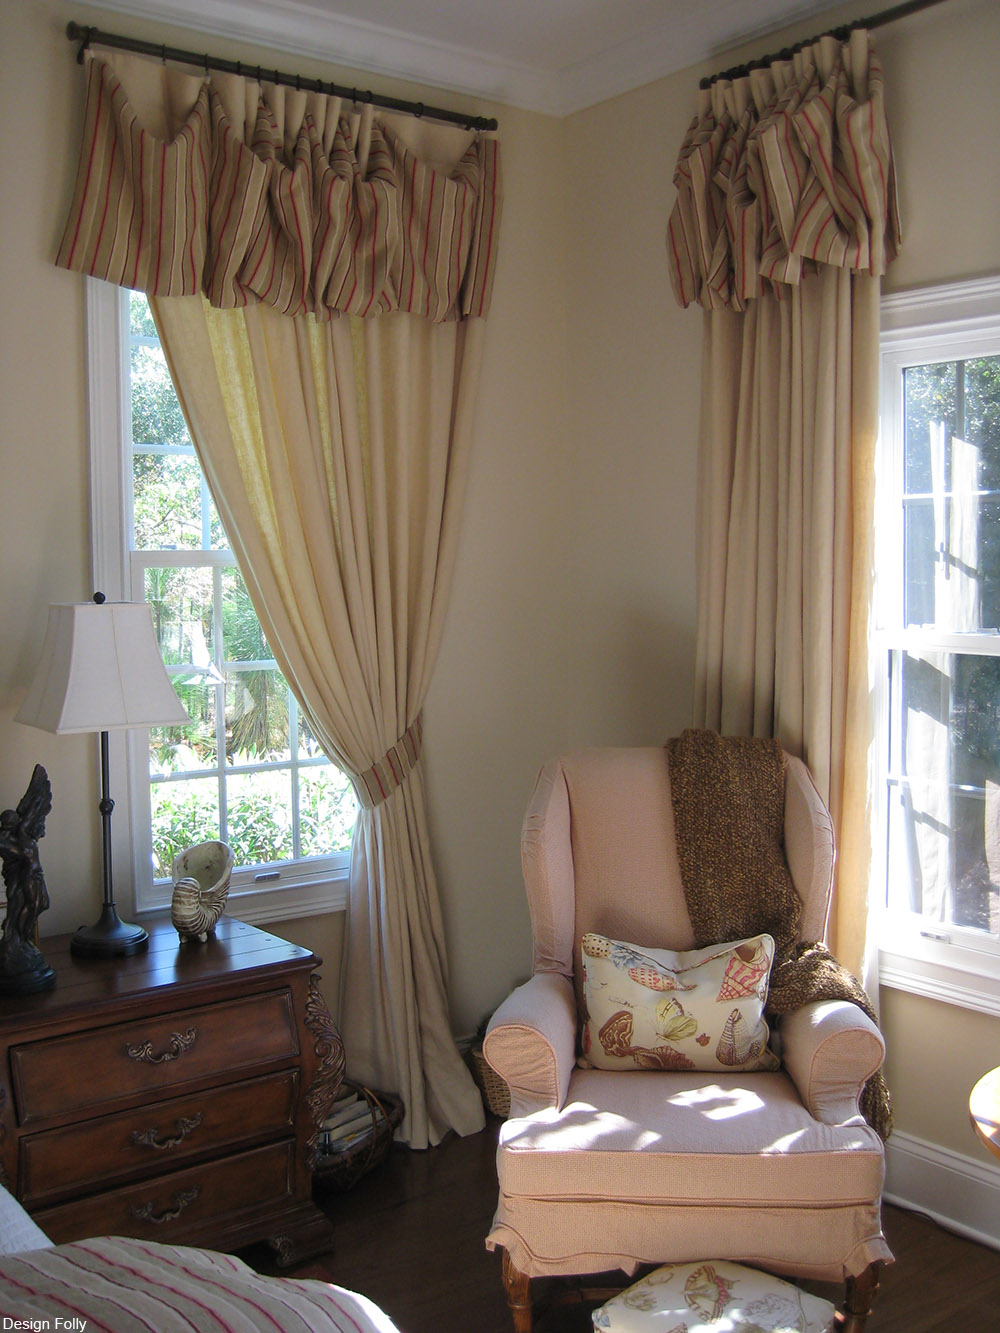 armchair by two windows with drapes